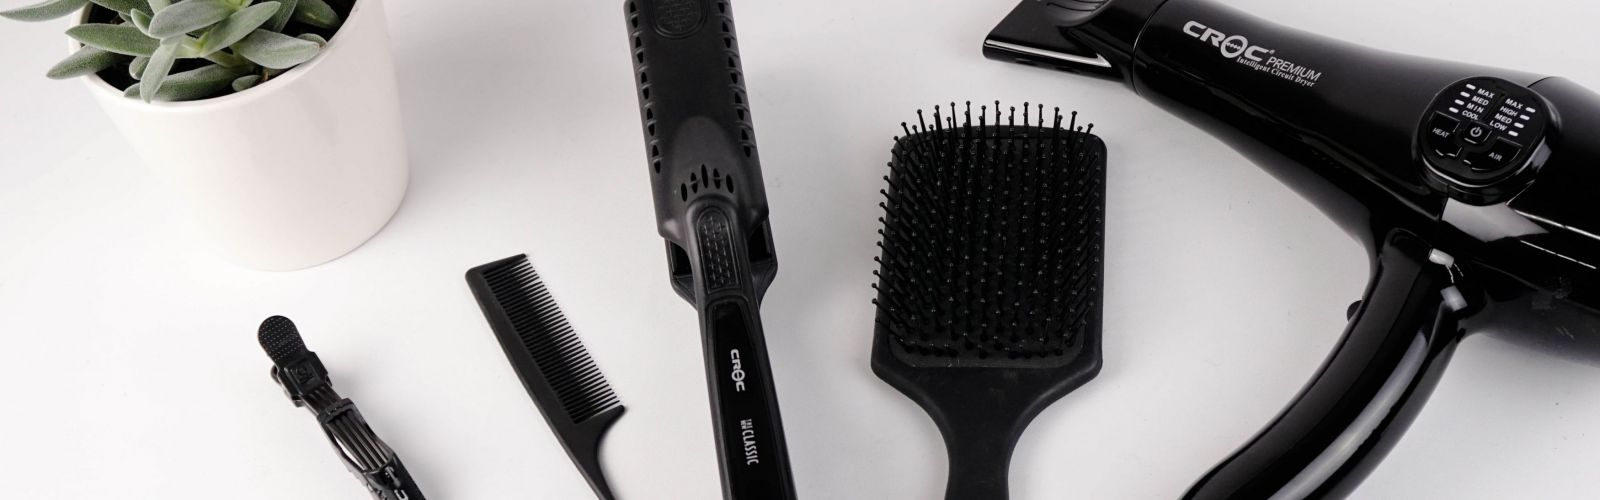 hair dryer and hair brushes